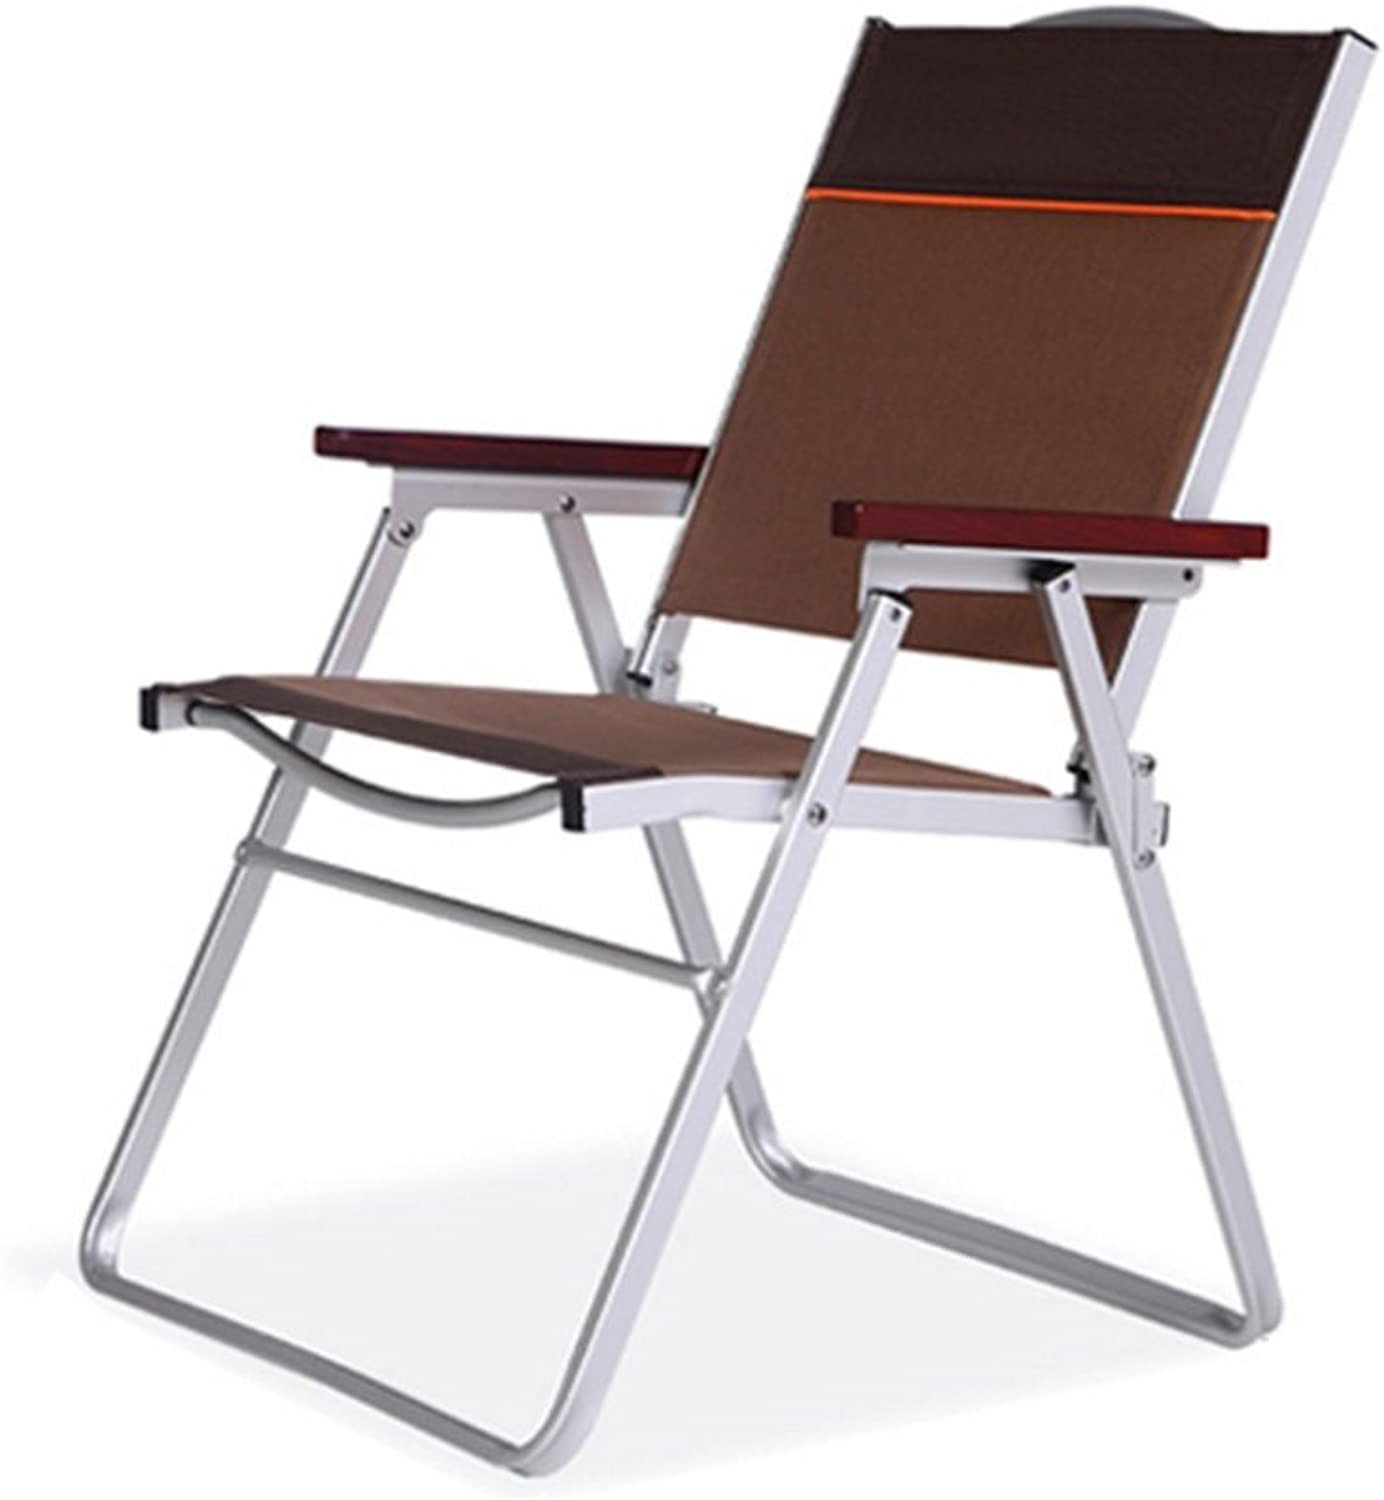 Outdoor Leisure Chair, Portable Balcony, Leisure Fishing Chair Stool Folding Aluminum Chair Canvas Chair, Folding Design,Versatility